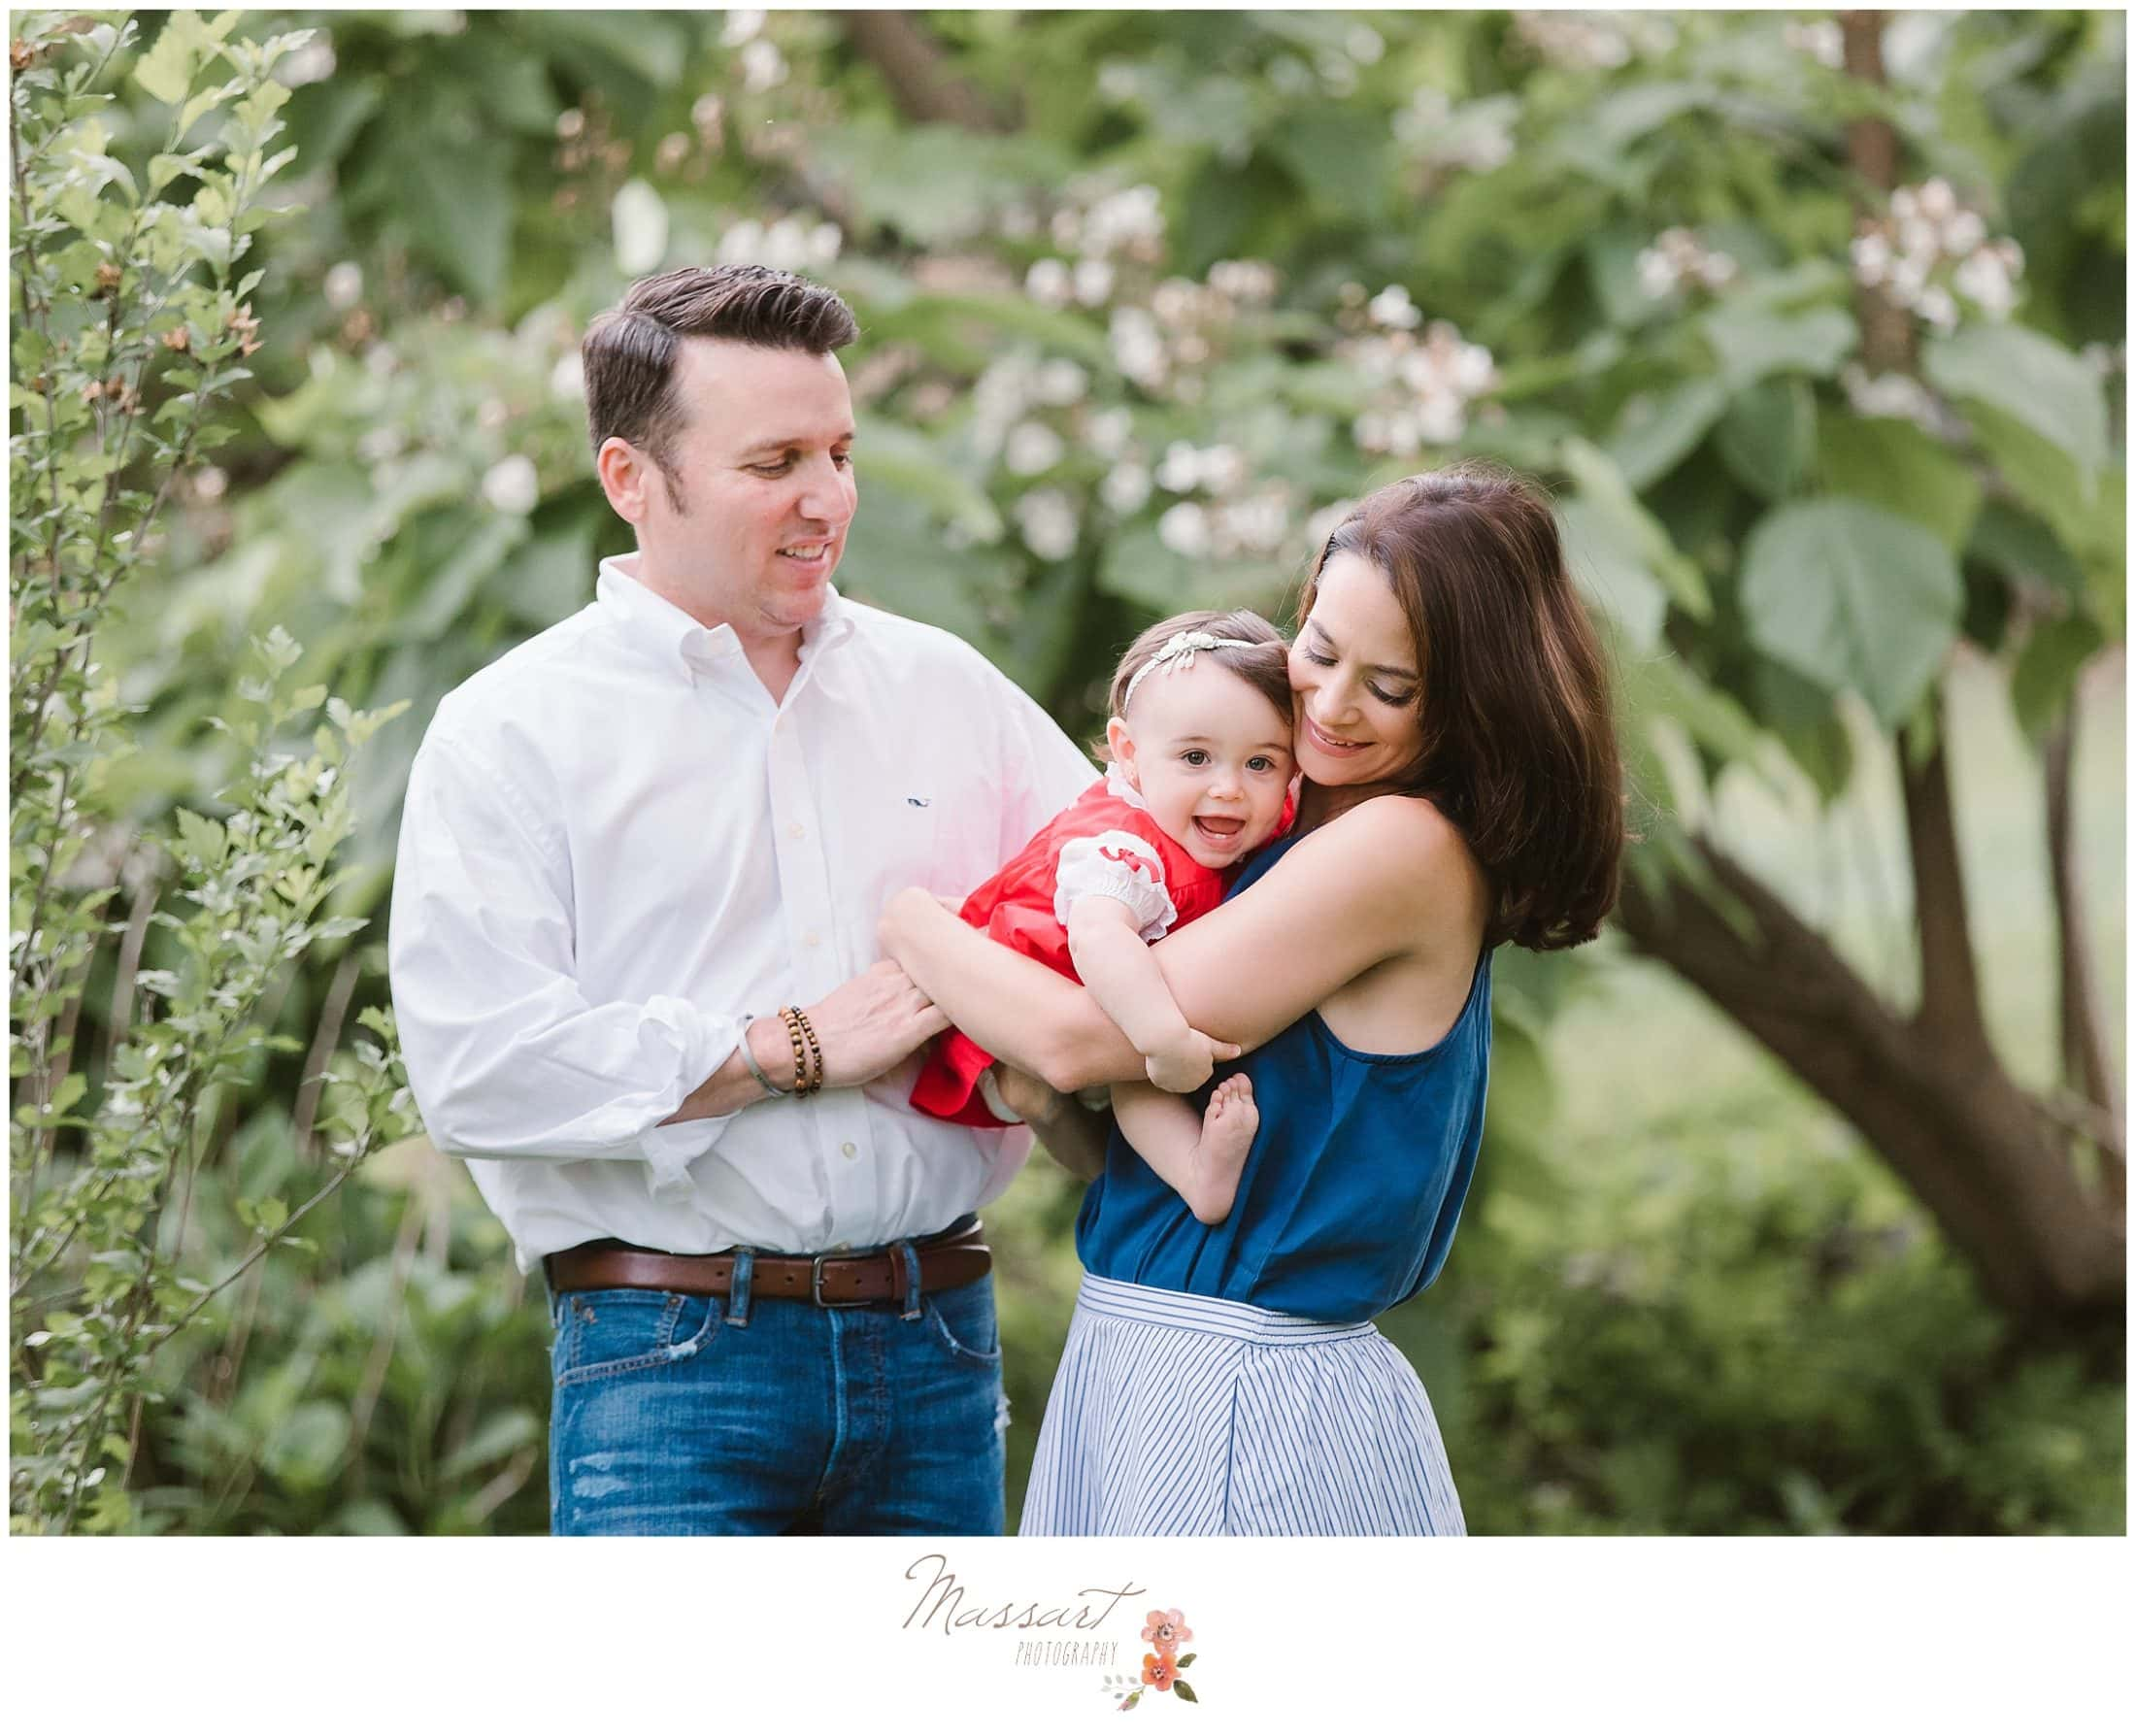 family portrait in the blueberry farm during daughter's first birthday cake smash session photographed by Massart Photography RI